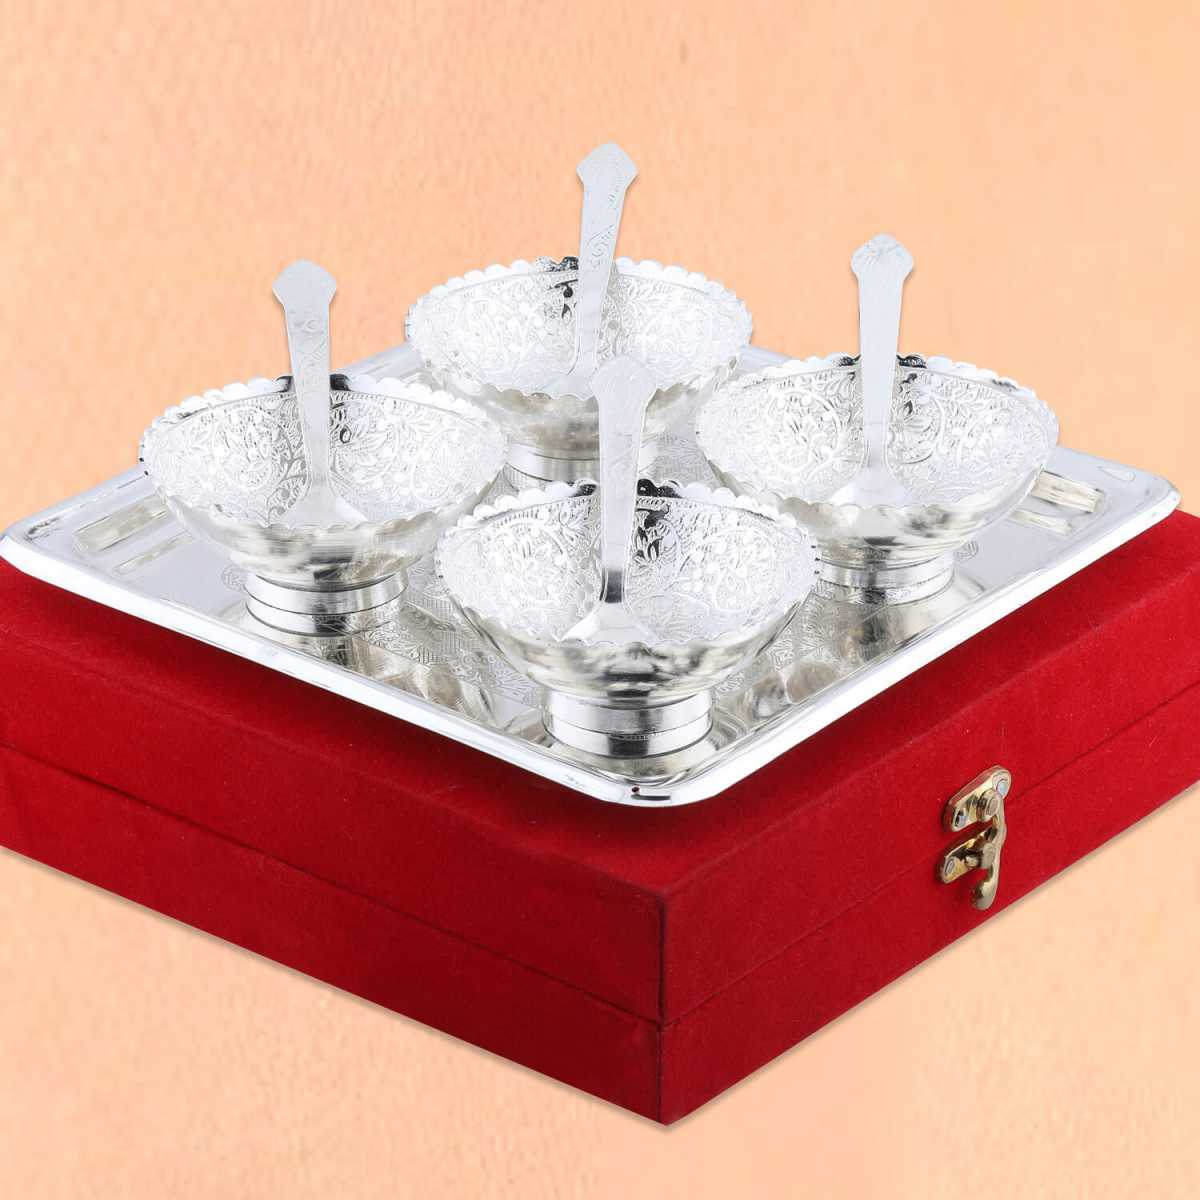 Silver Shine Silver Plated Bowl And Spoon Set With Tray For Gift-Set of 9